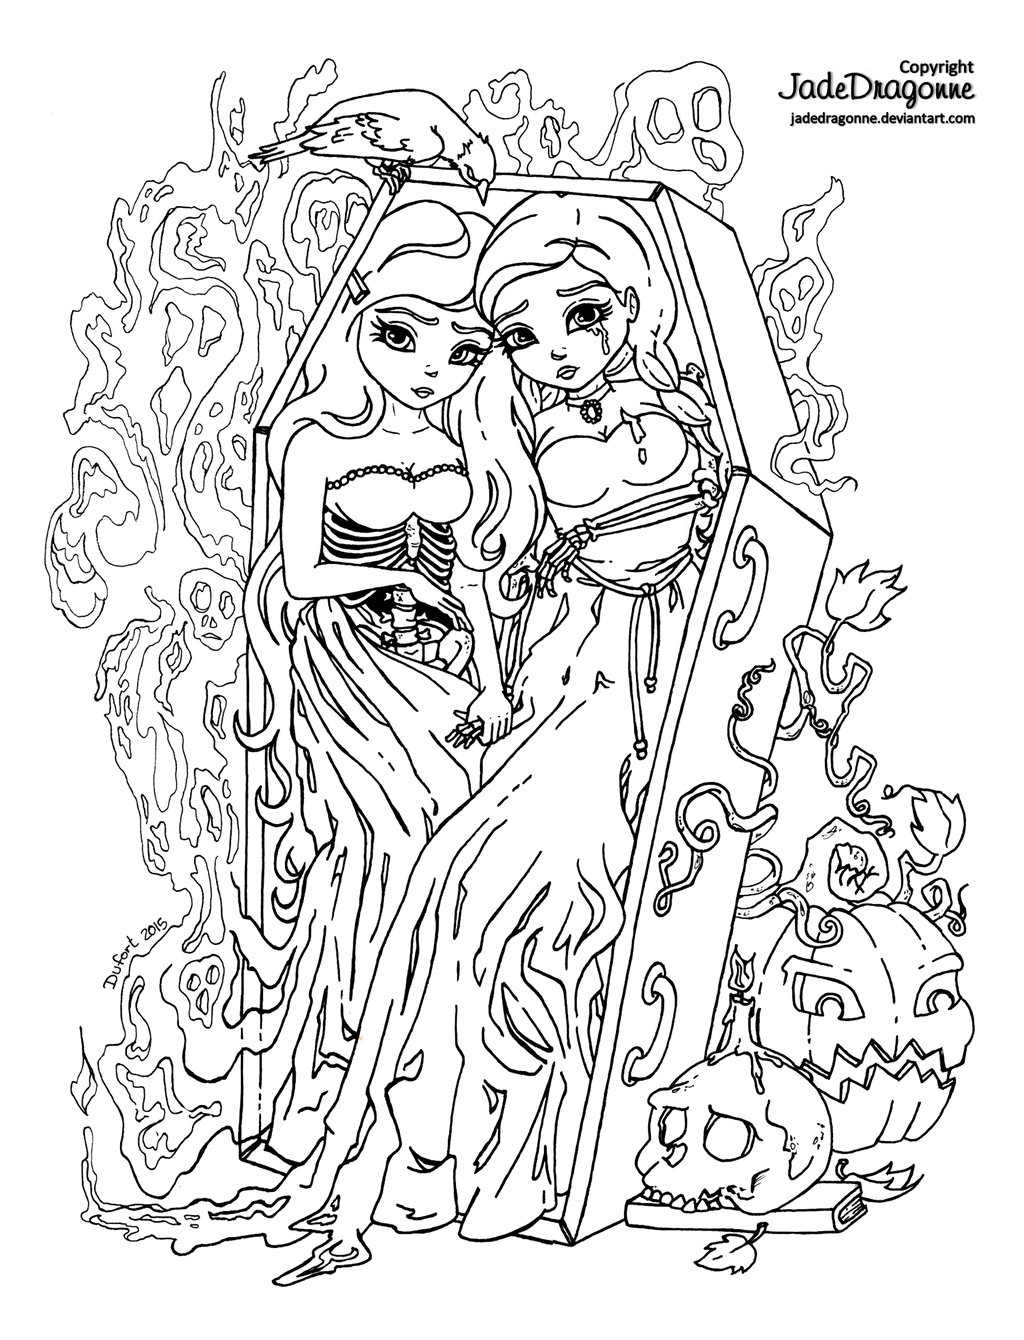 Coloring pages for halloween coloring contest - The Twins 2015 Halloween Coloring Contest By Jadedragonne Deviantart Com On Deviantart